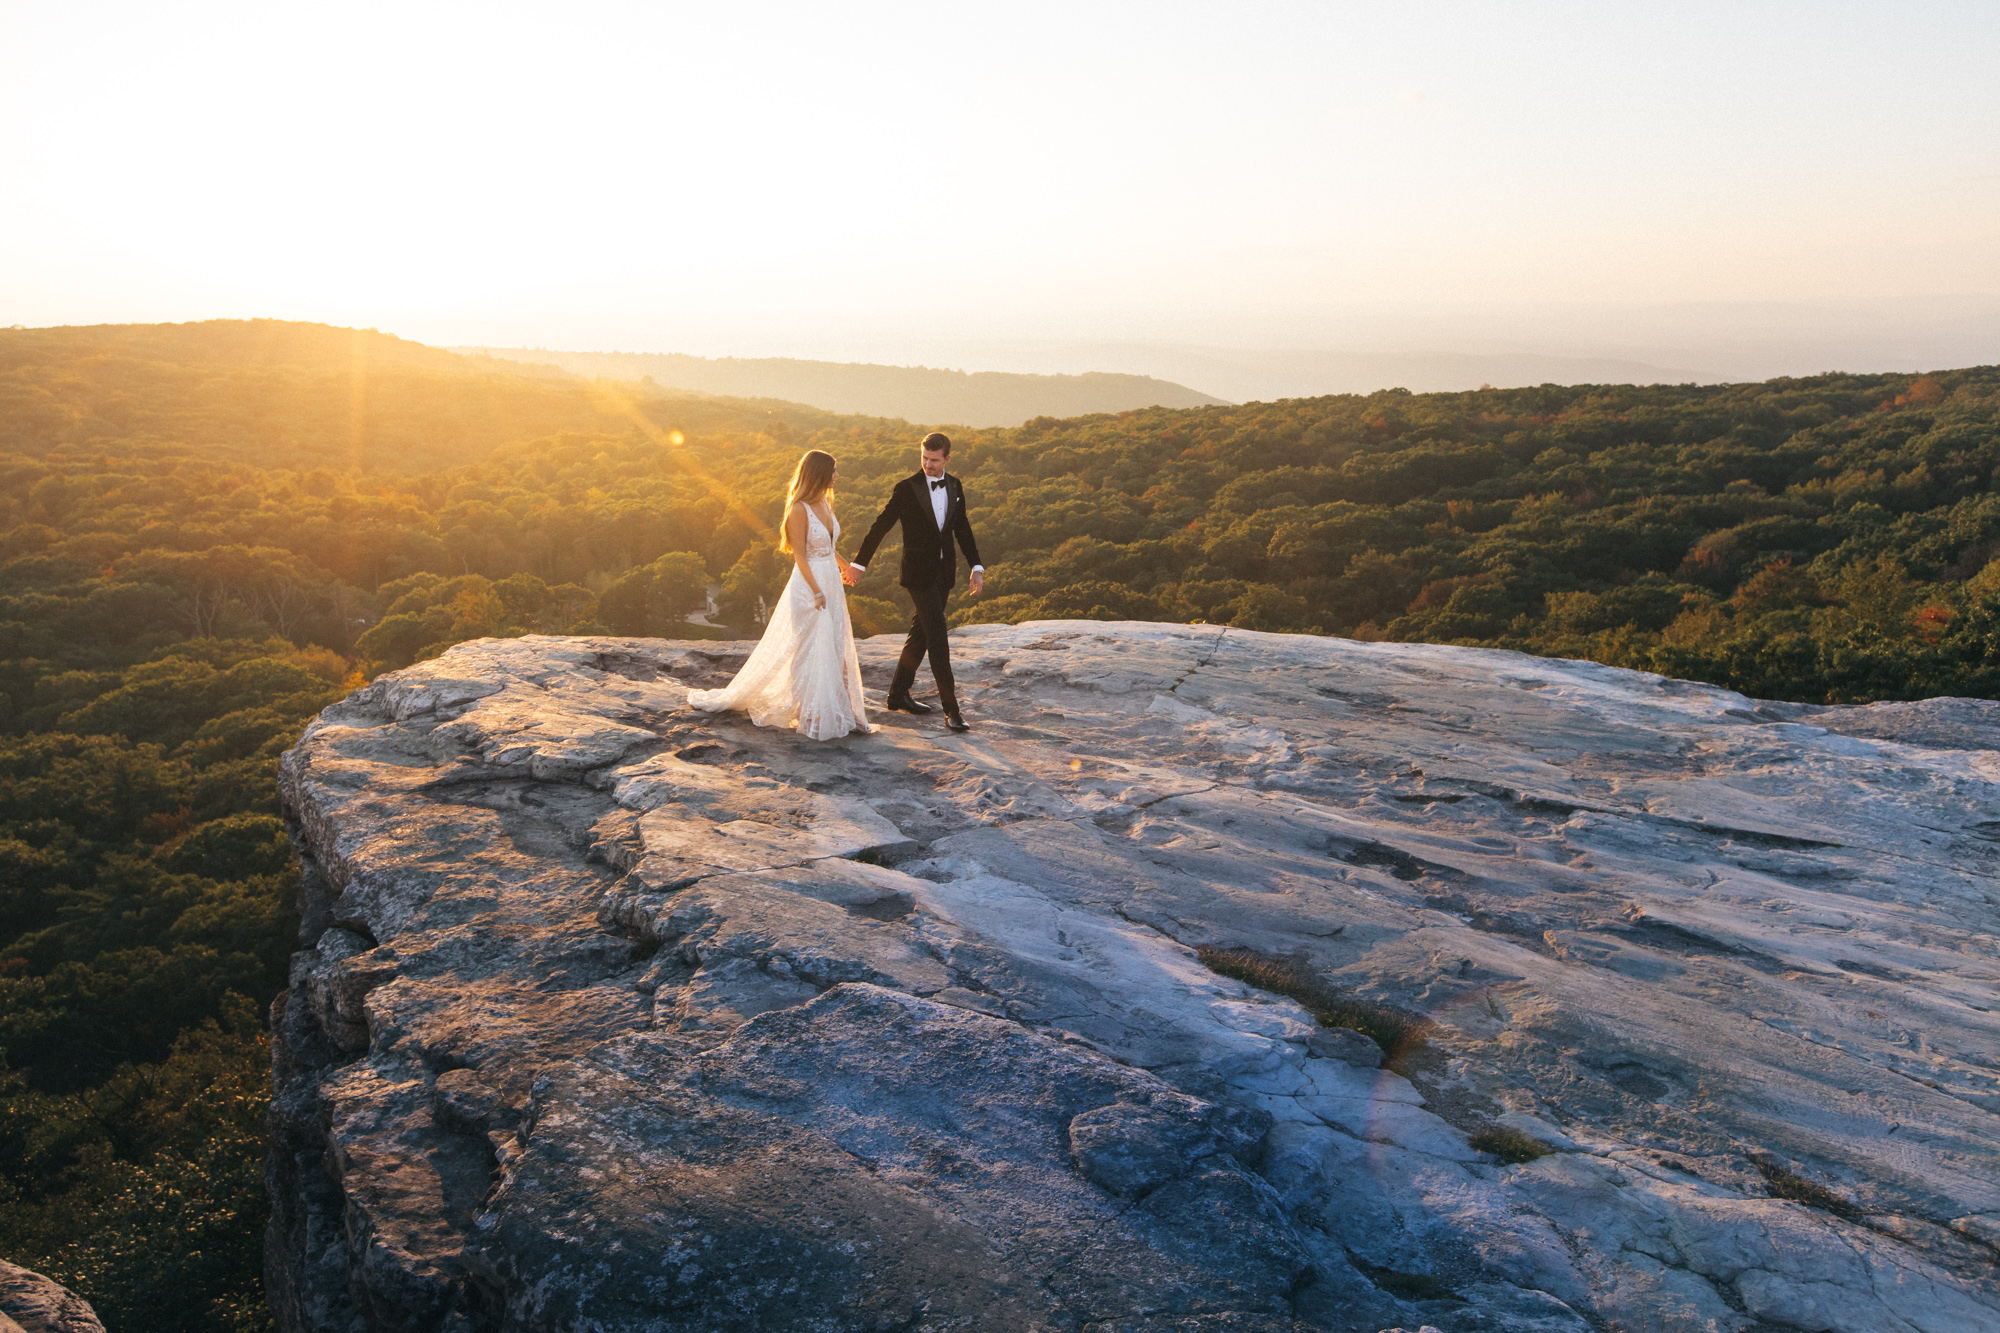 Brooklyn NYC wedding photographer Boris Zaretsky minnewaska state park sam's point hudson valley wedding5X2A8681 copy.jpg